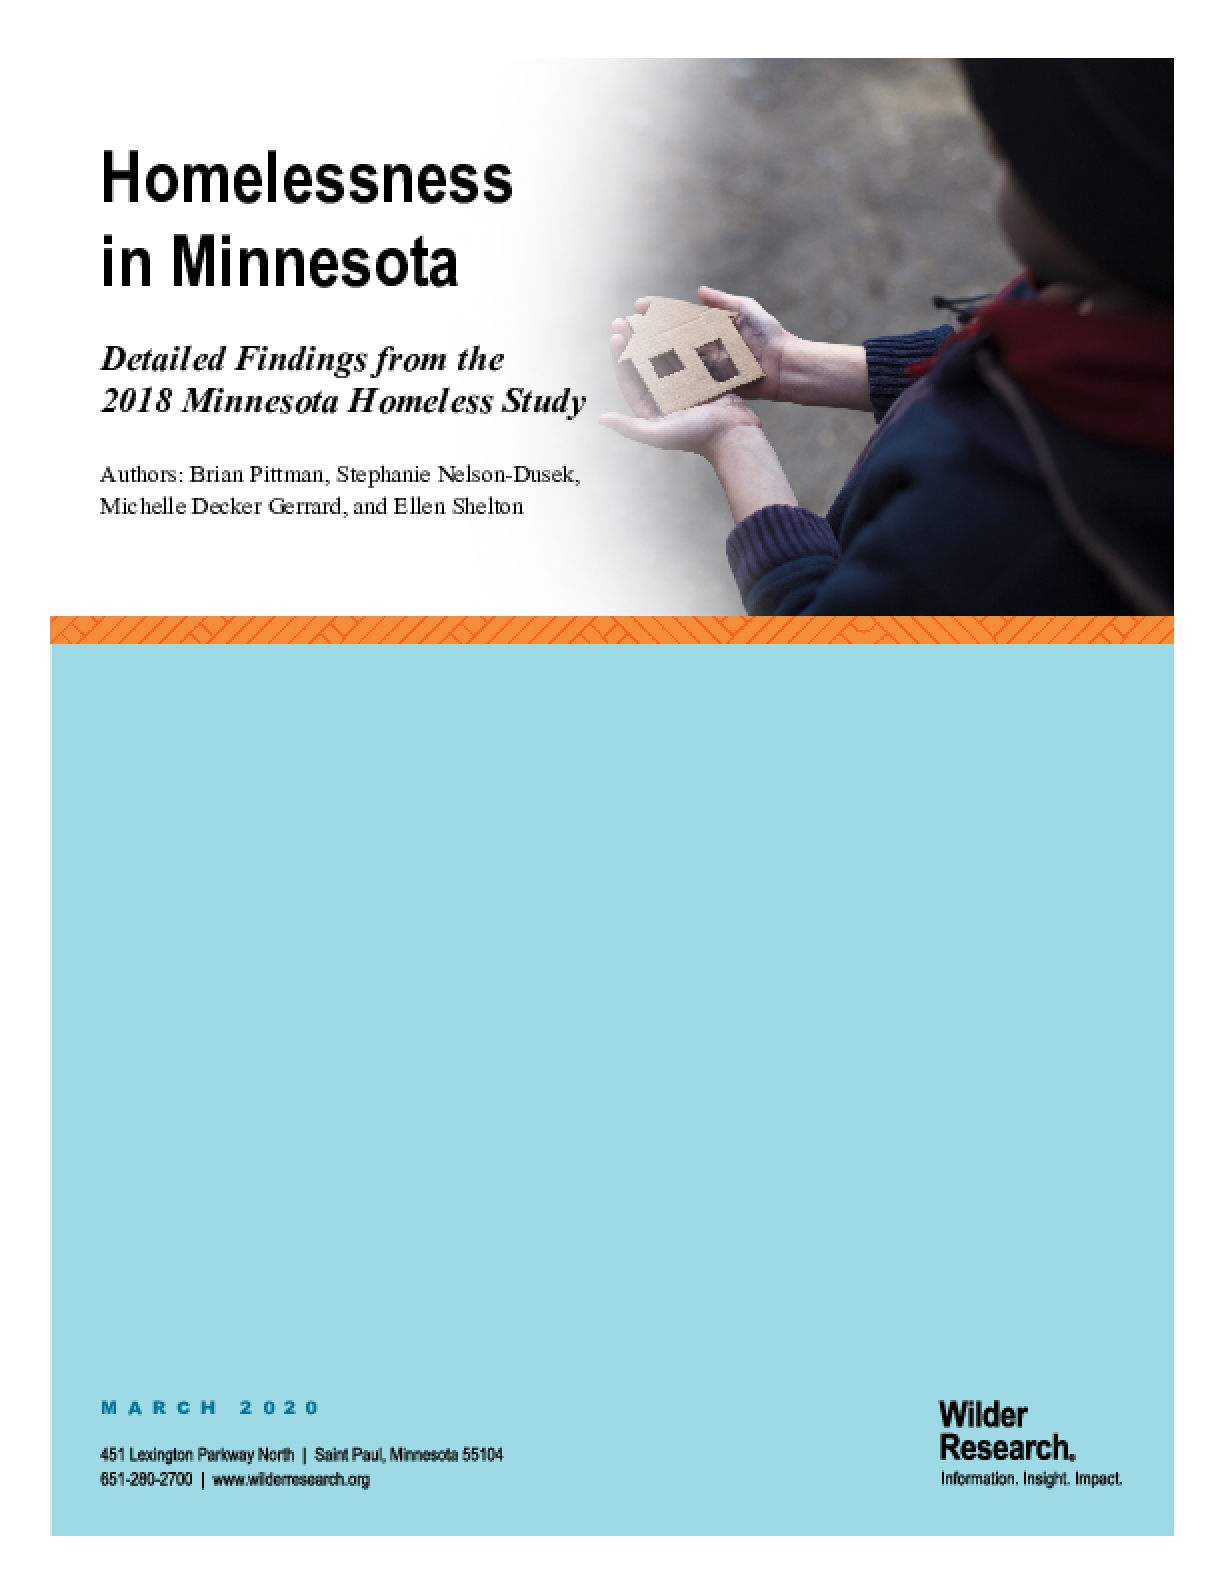 Homelessness in Minnesota: Detailed Findings from the 2018 Minnesota Homeless Study